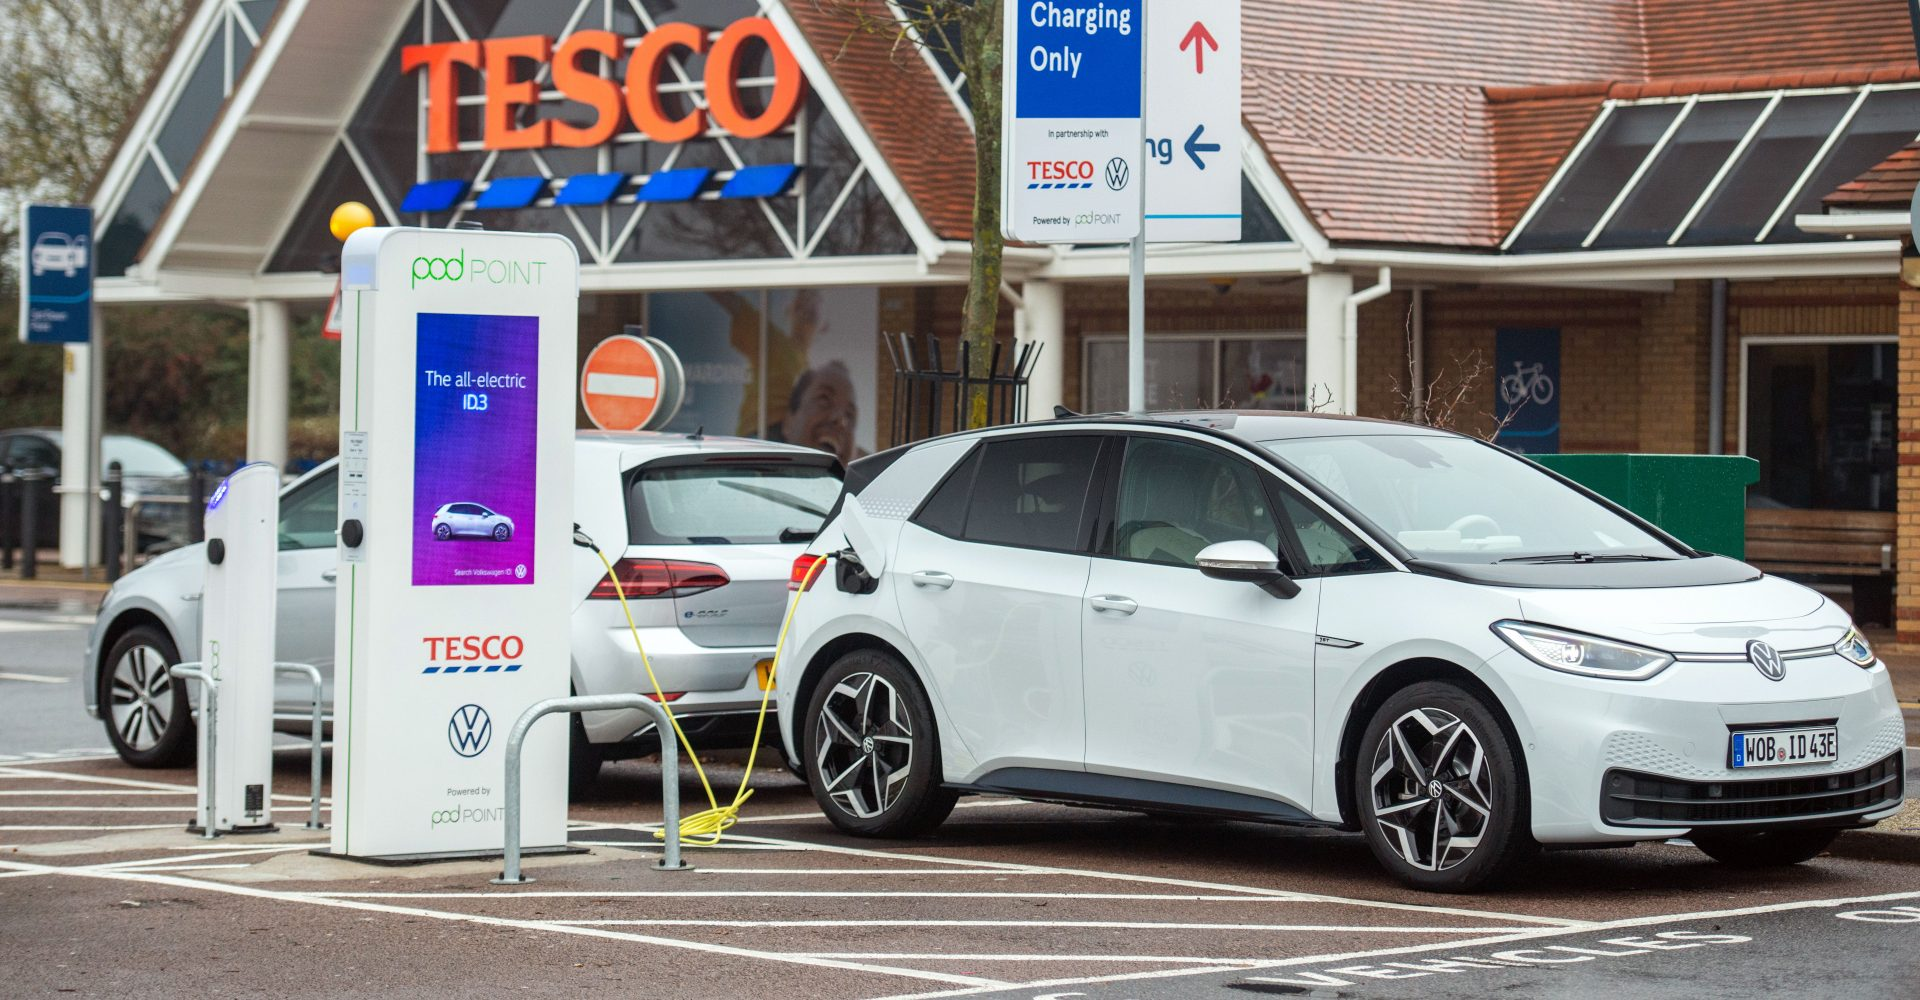 The cost of charging an EV remains a 'jungle', says EV expert